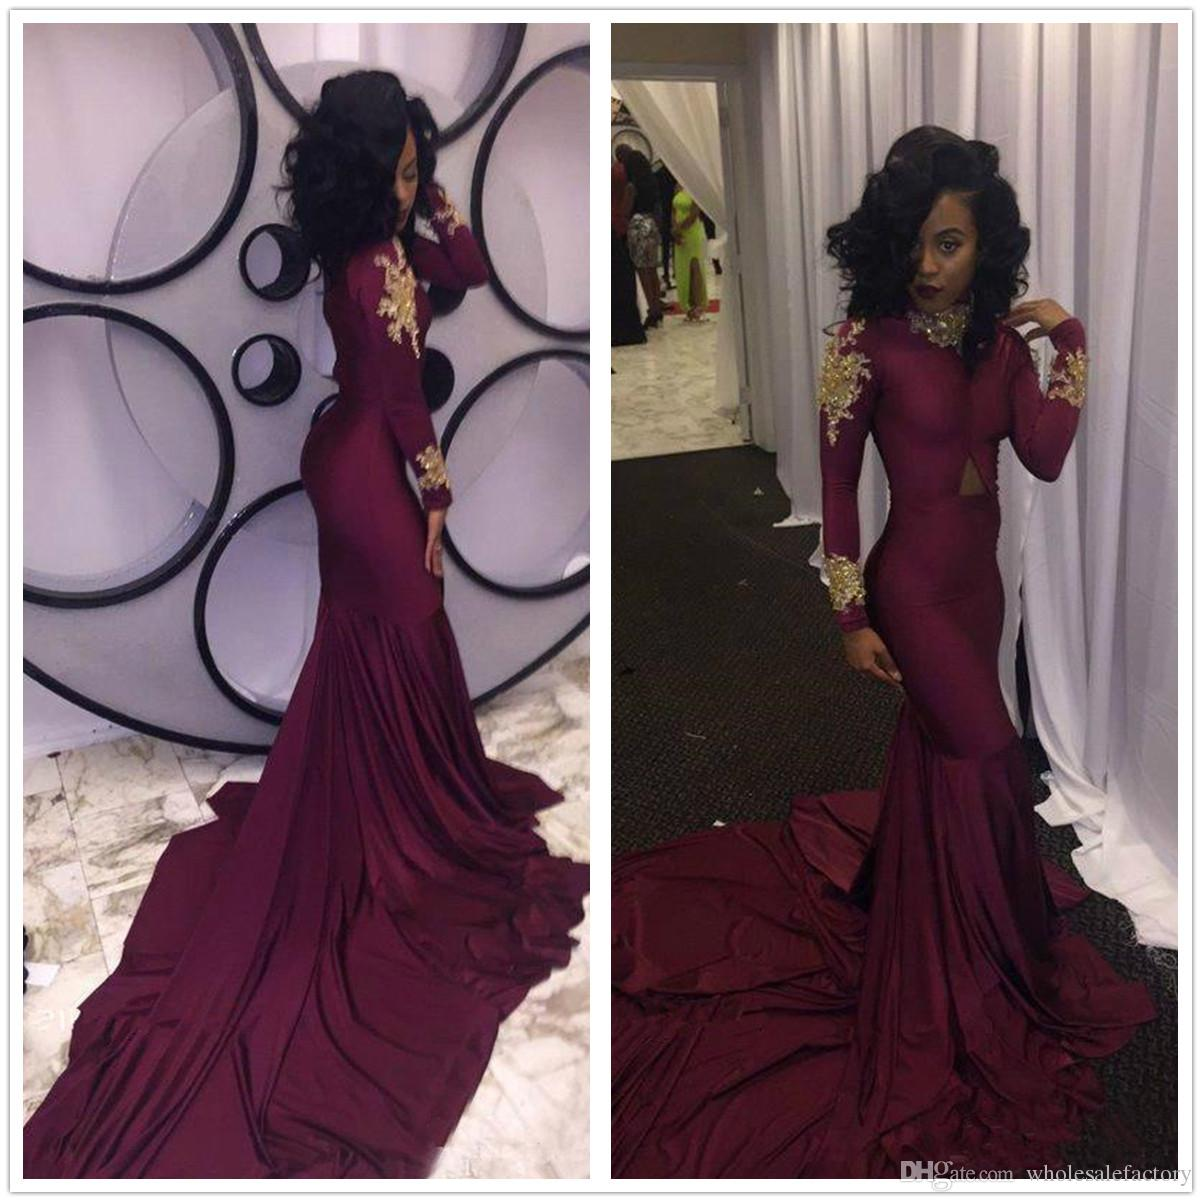 d29d827b0e4 2018 Black Grils Long Sleeves Satin Mermaid Prom Dresses High Neck Gold Lace  Applique Beaded Cutout Formal Evening Party Dresses Elegant Prom Dresses Uk  ...